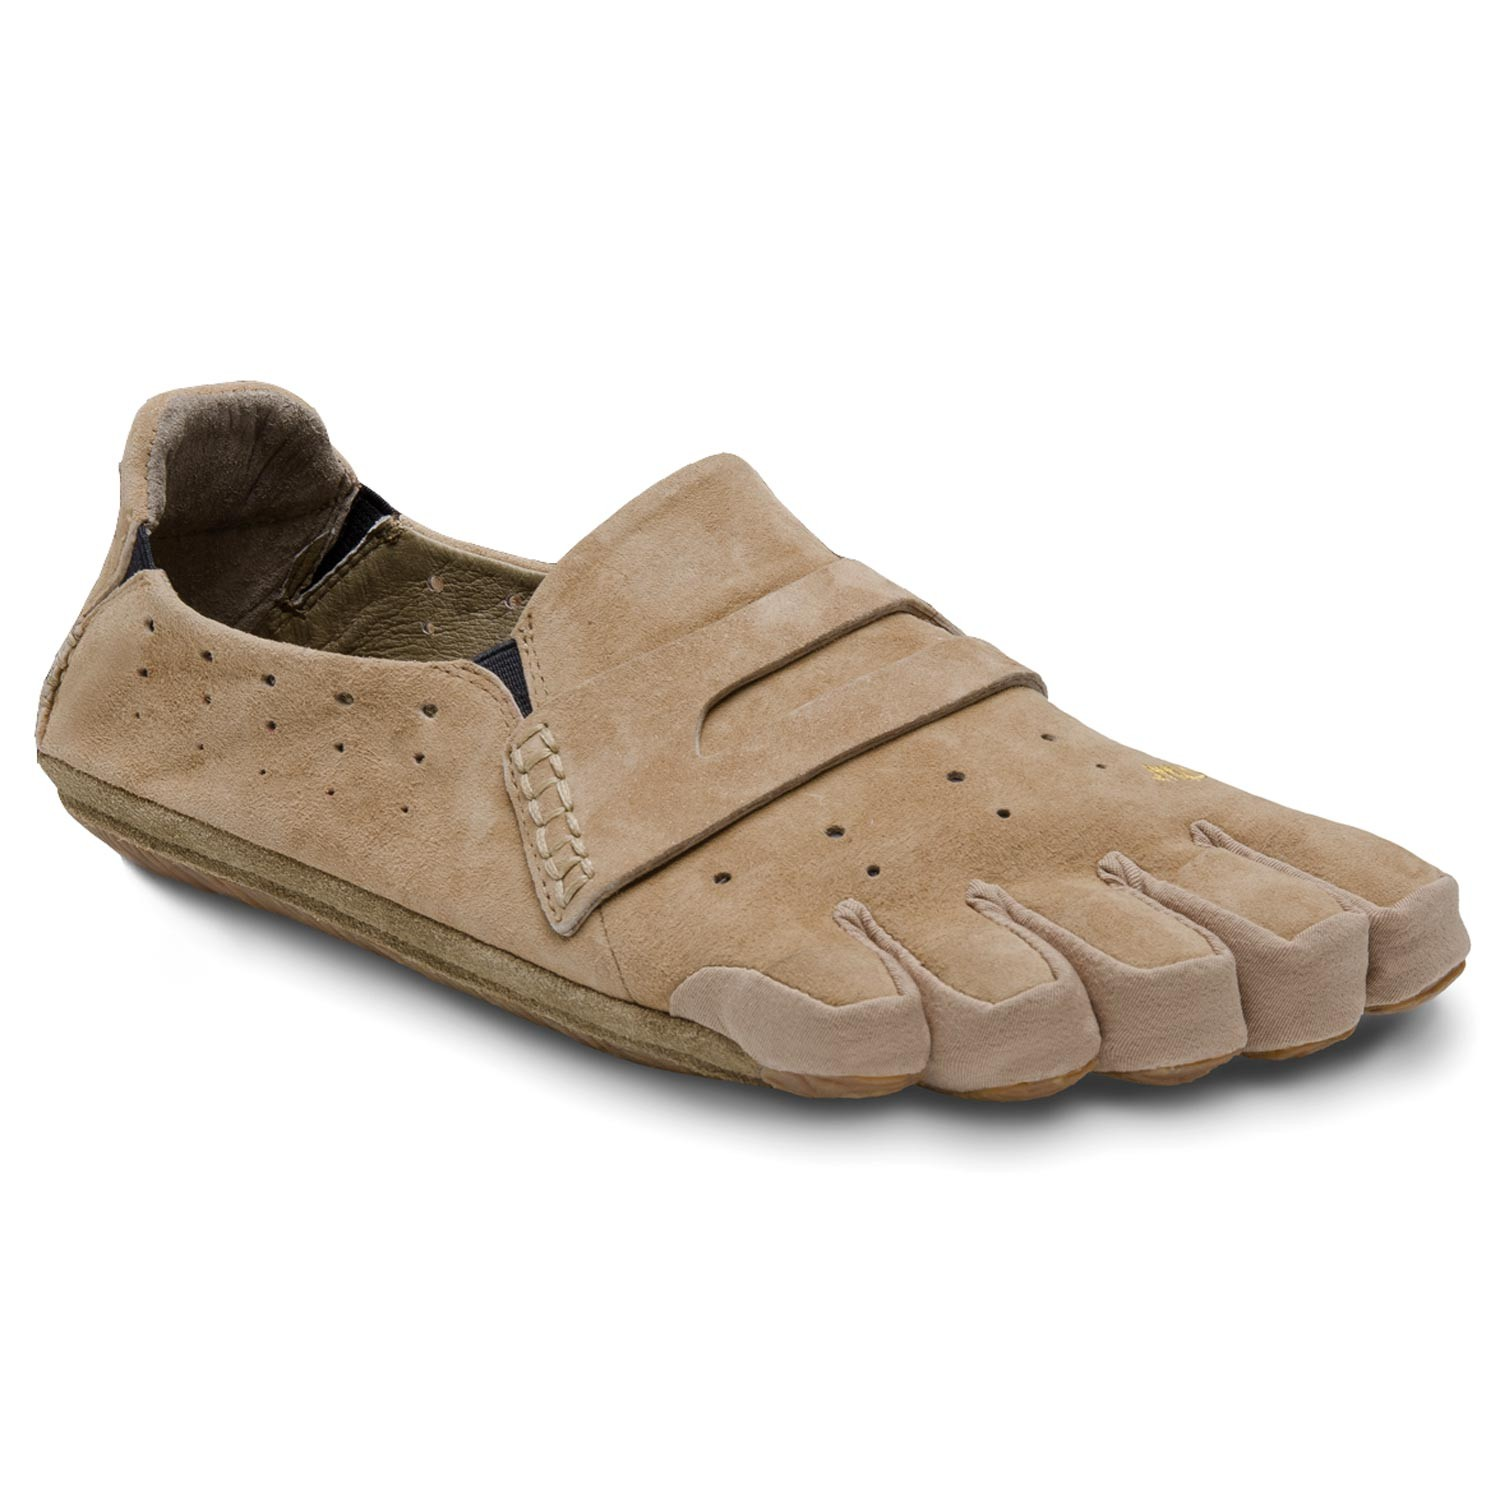 vibram fivefingers leather casual mens walking shoes